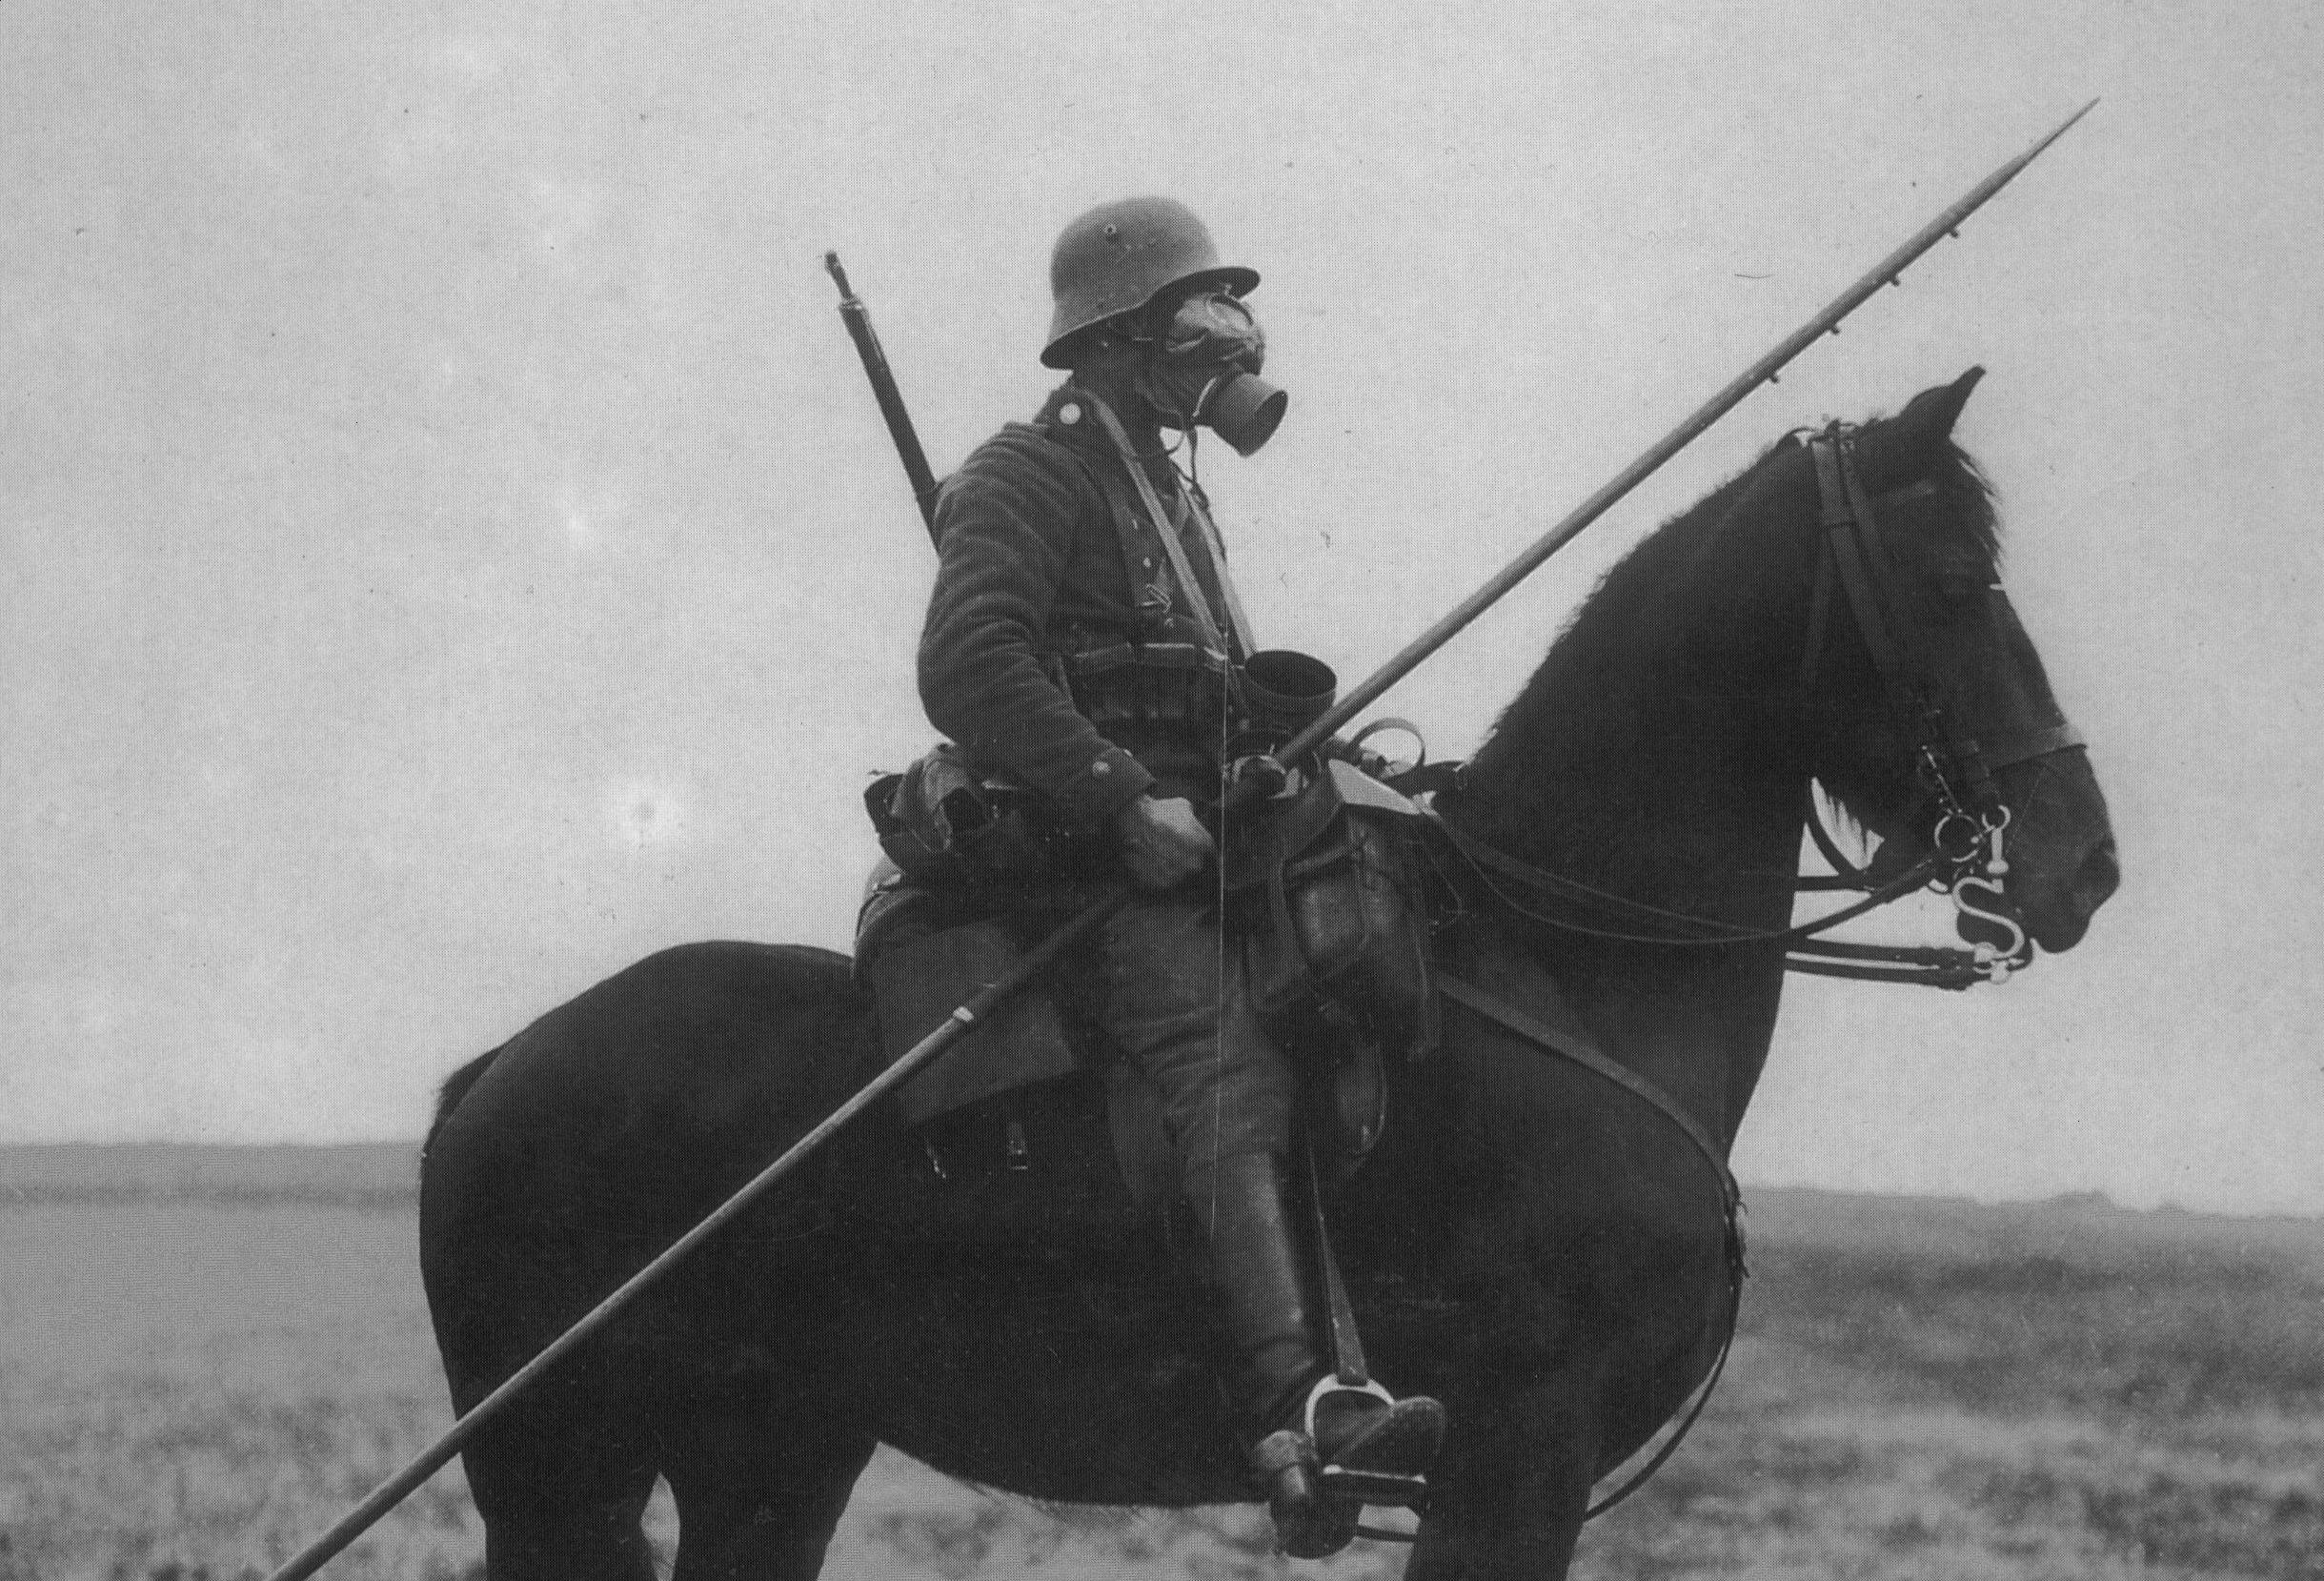 Soldiers Horses World War I Helmets German Armed Forces